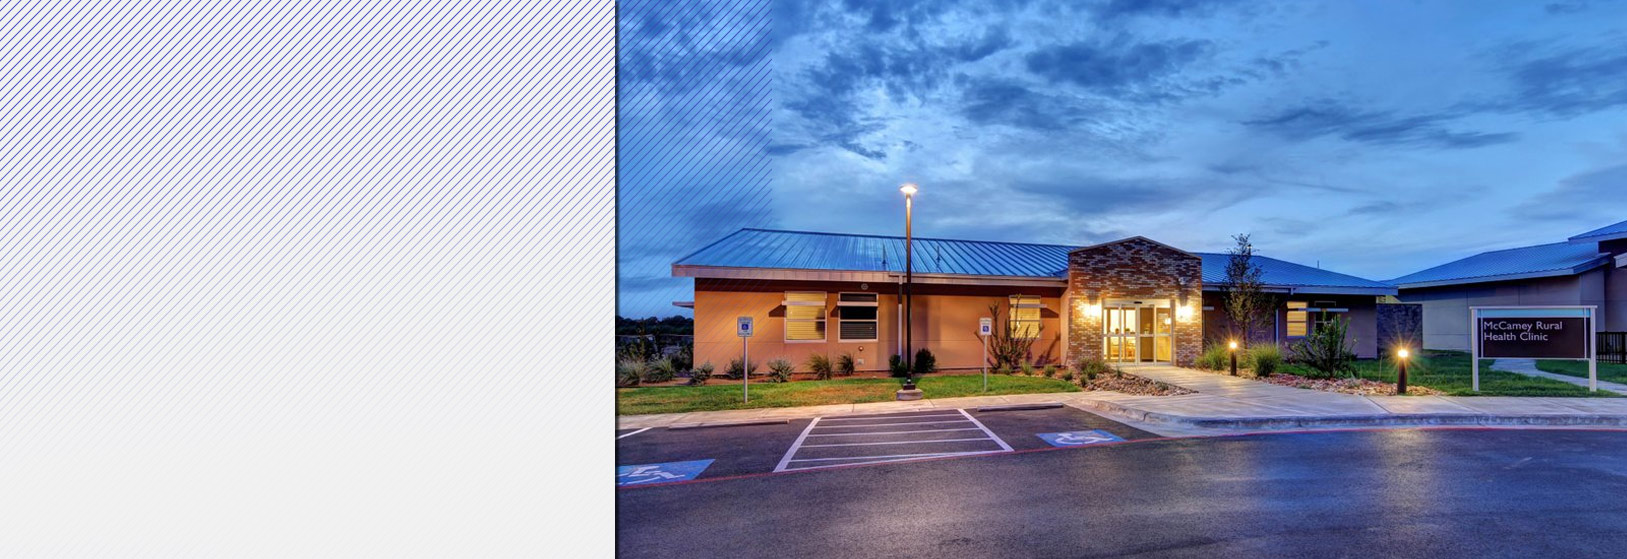 McCamey County Hospital Rural Health Clinic